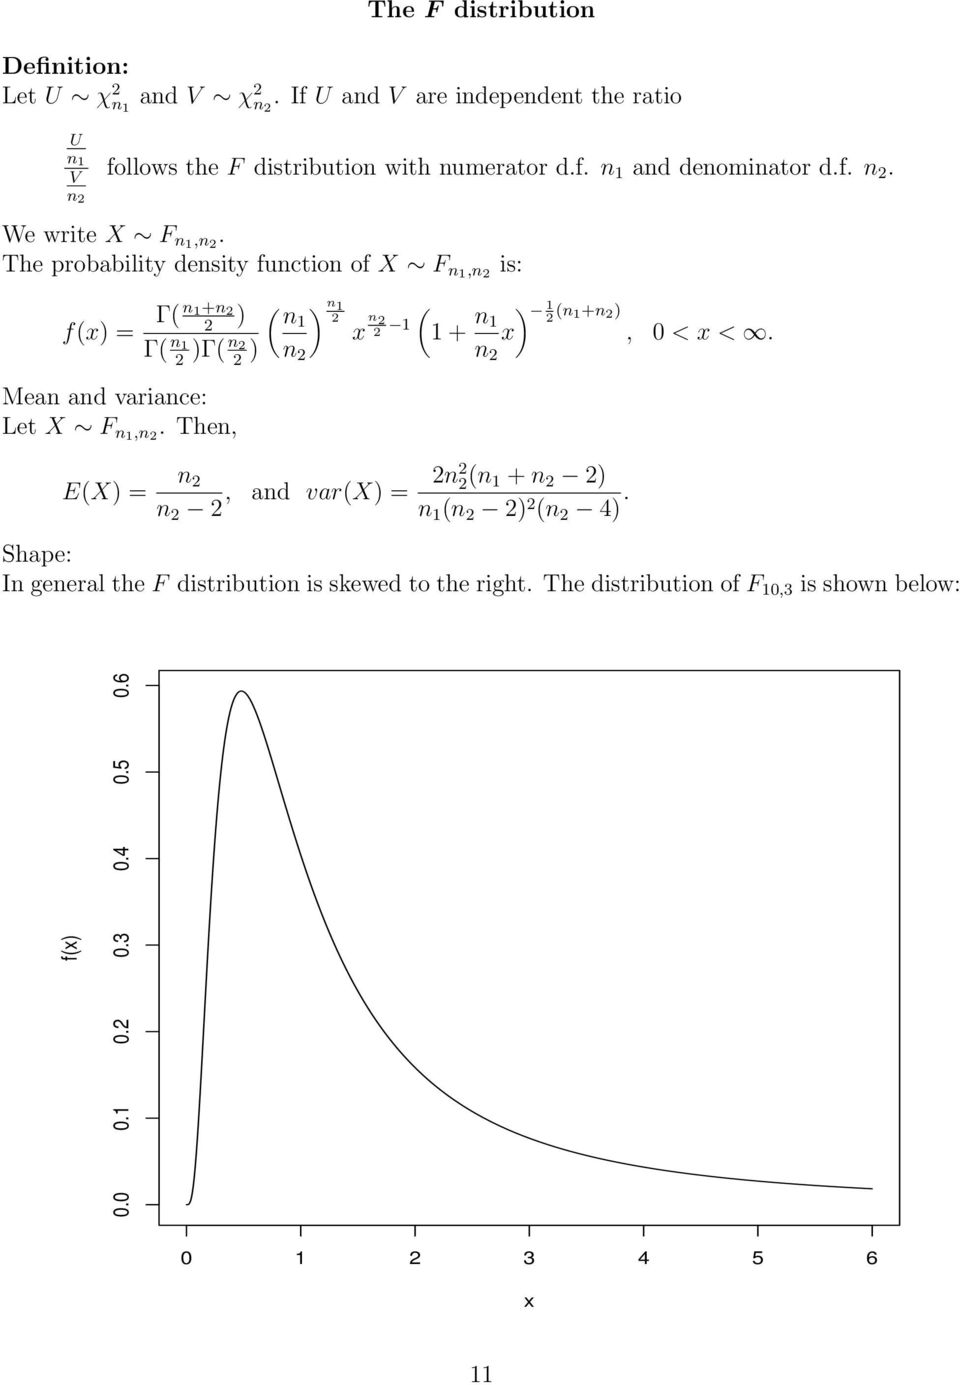 The probability desity fuctio of X F 1, f(x) = Γ( 1+ ) Γ( 1 )Γ( Mea ad variace: Let X F 1,.